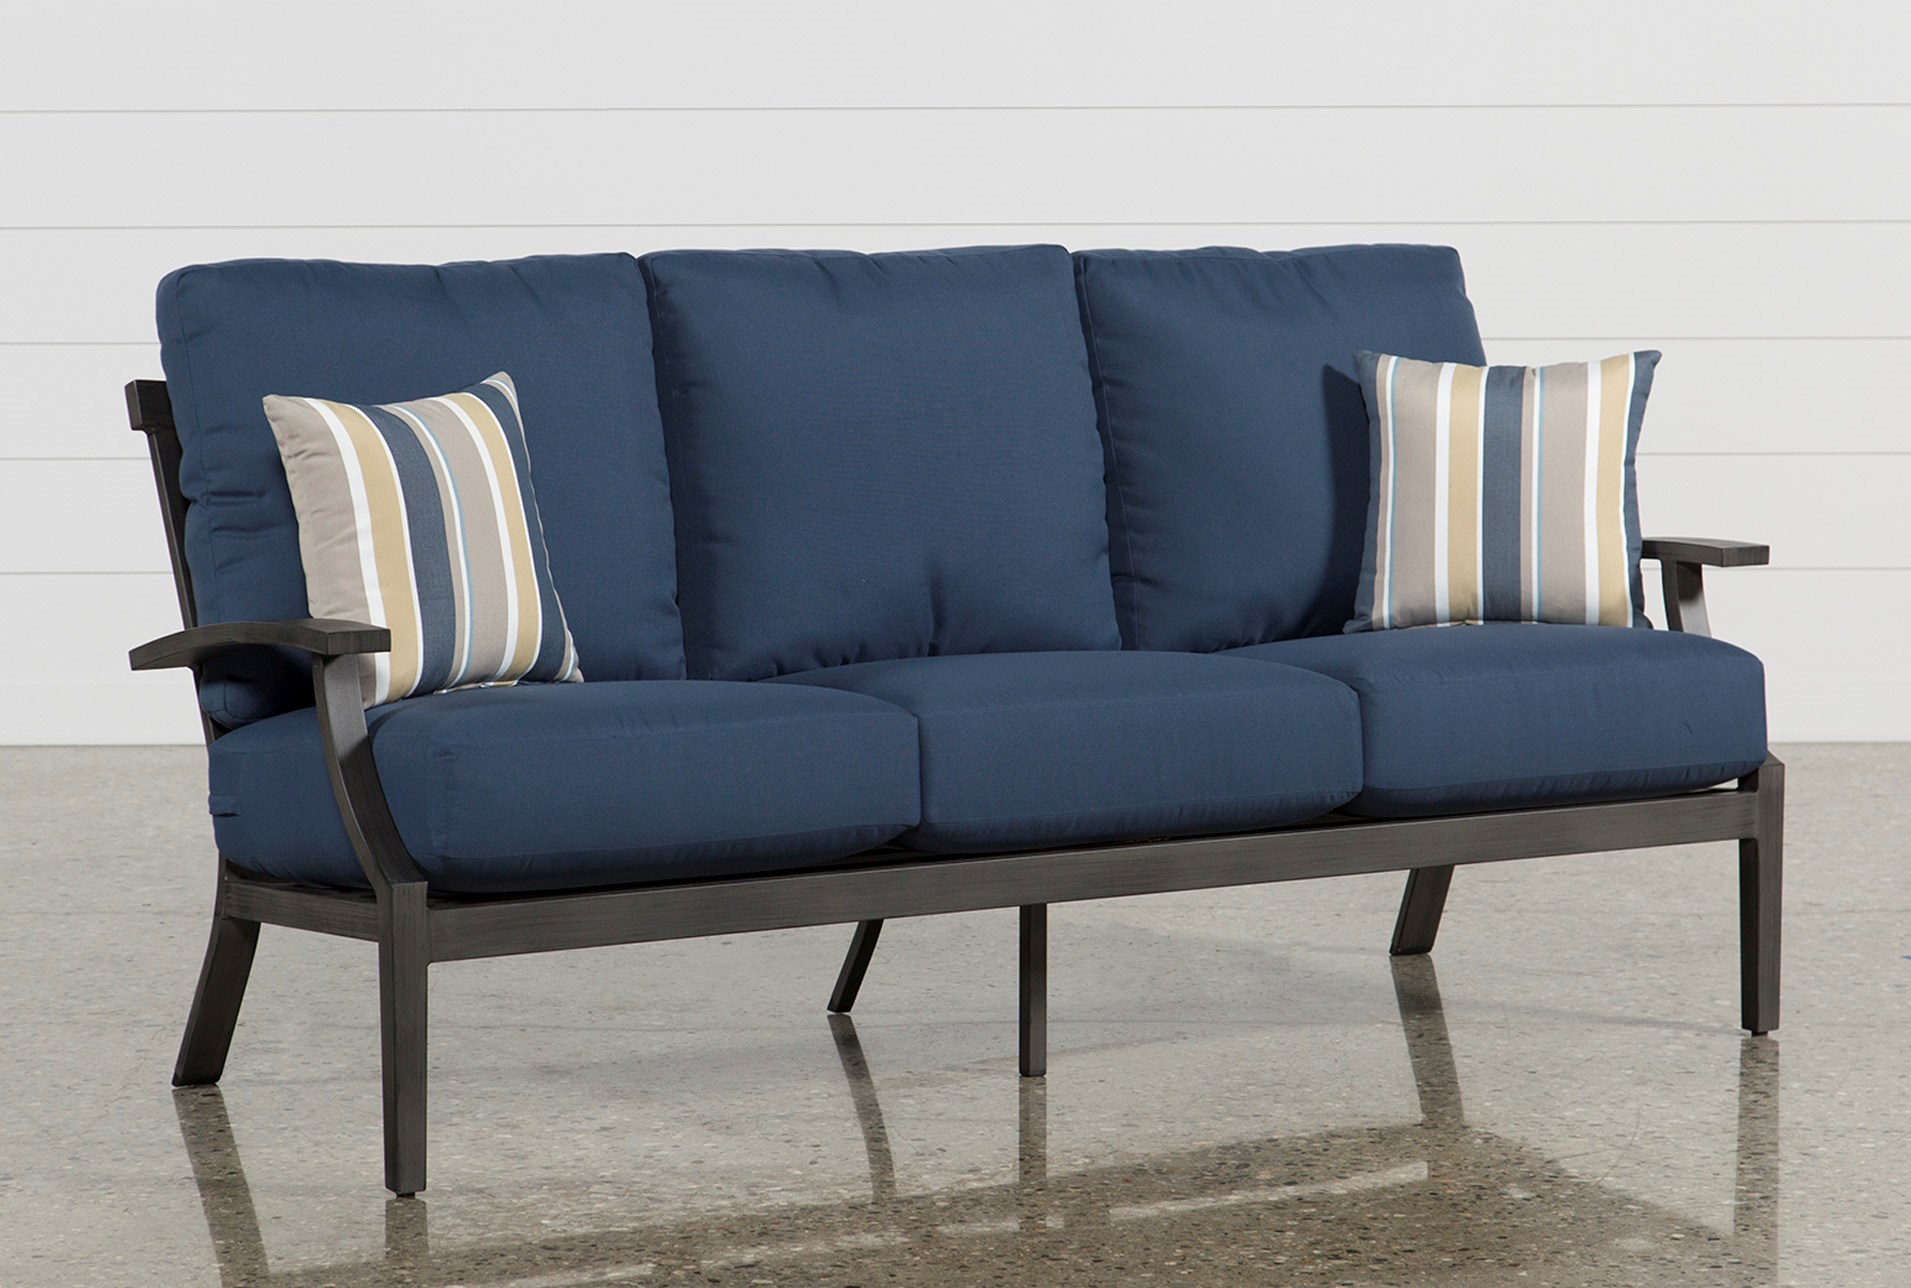 Martinique Navy Outdoor Sofa | Living Spaces on Living Spaces Outdoor Sectional id=27856